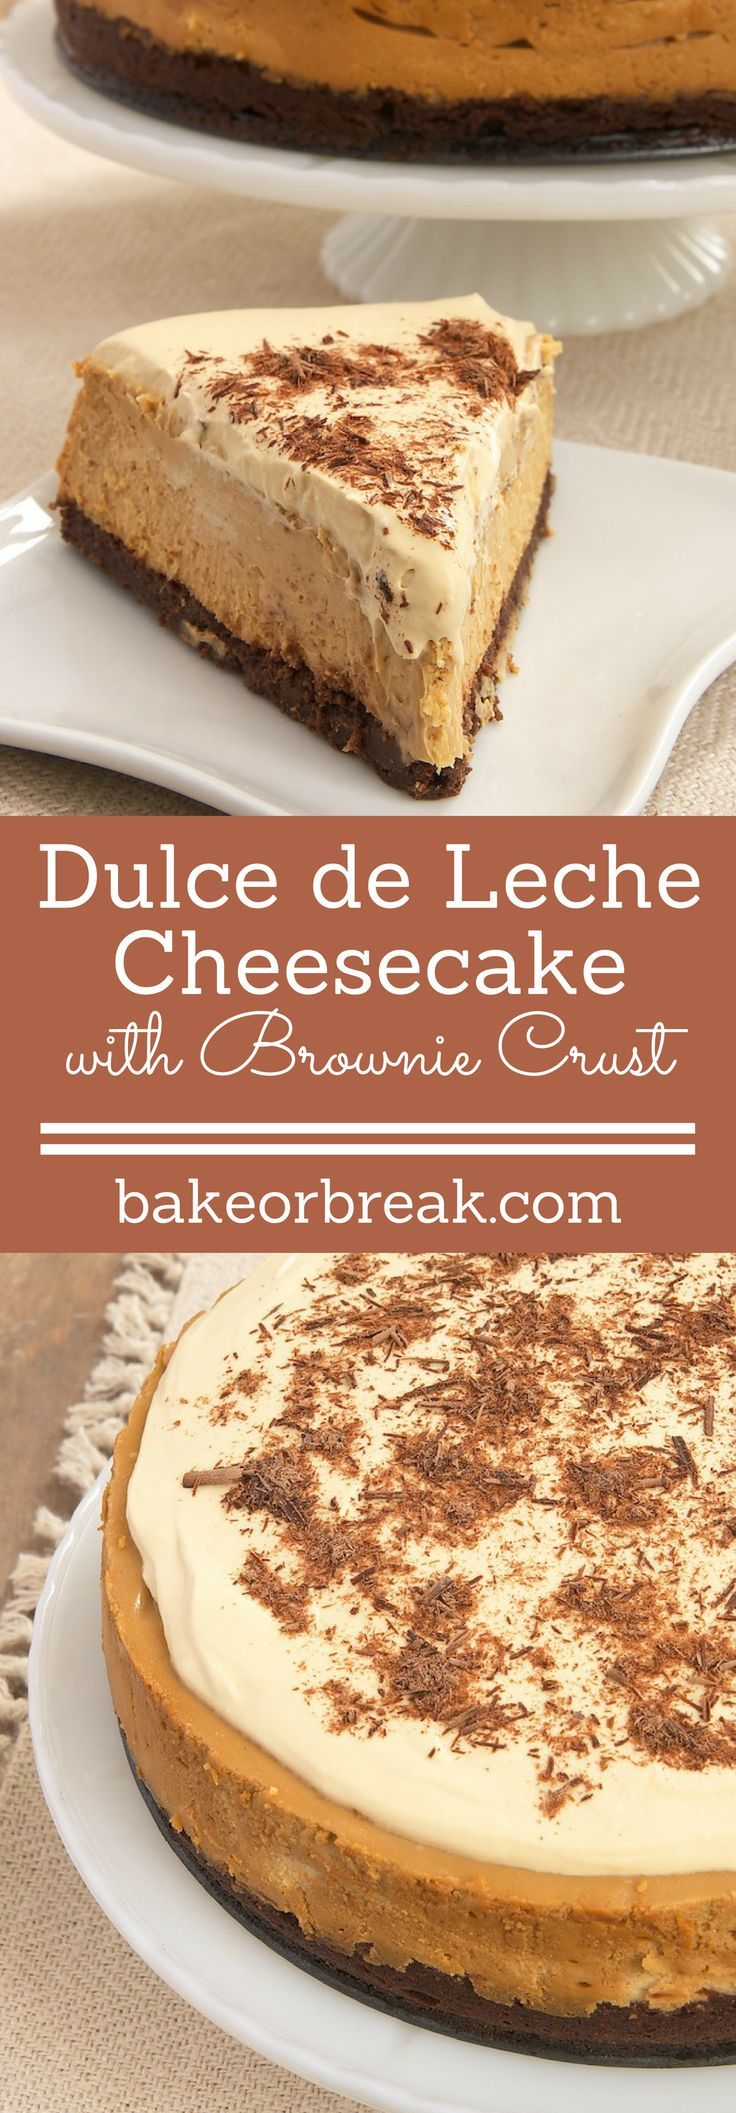 Dulce de Leche Cheesecake with Brownie Crust is an amazingly delicious combination of rich dulce de leche and dark chocolate brownie. - Bake or Break ~ http://www.bakeorbreak.com